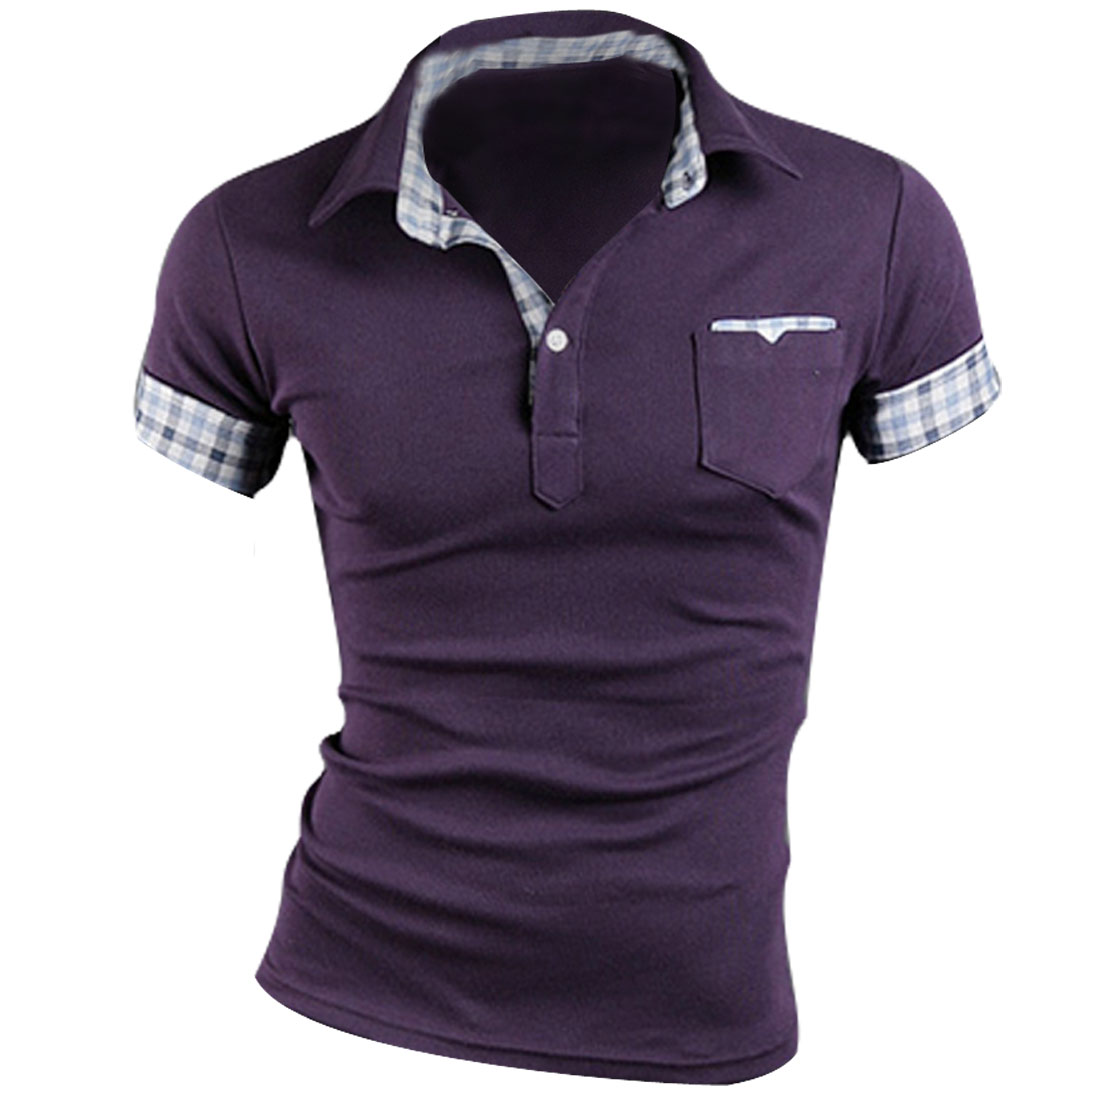 Man Chic Short Sleeve Plaids Cuff Button Front Decor Purple Polo Shirt M